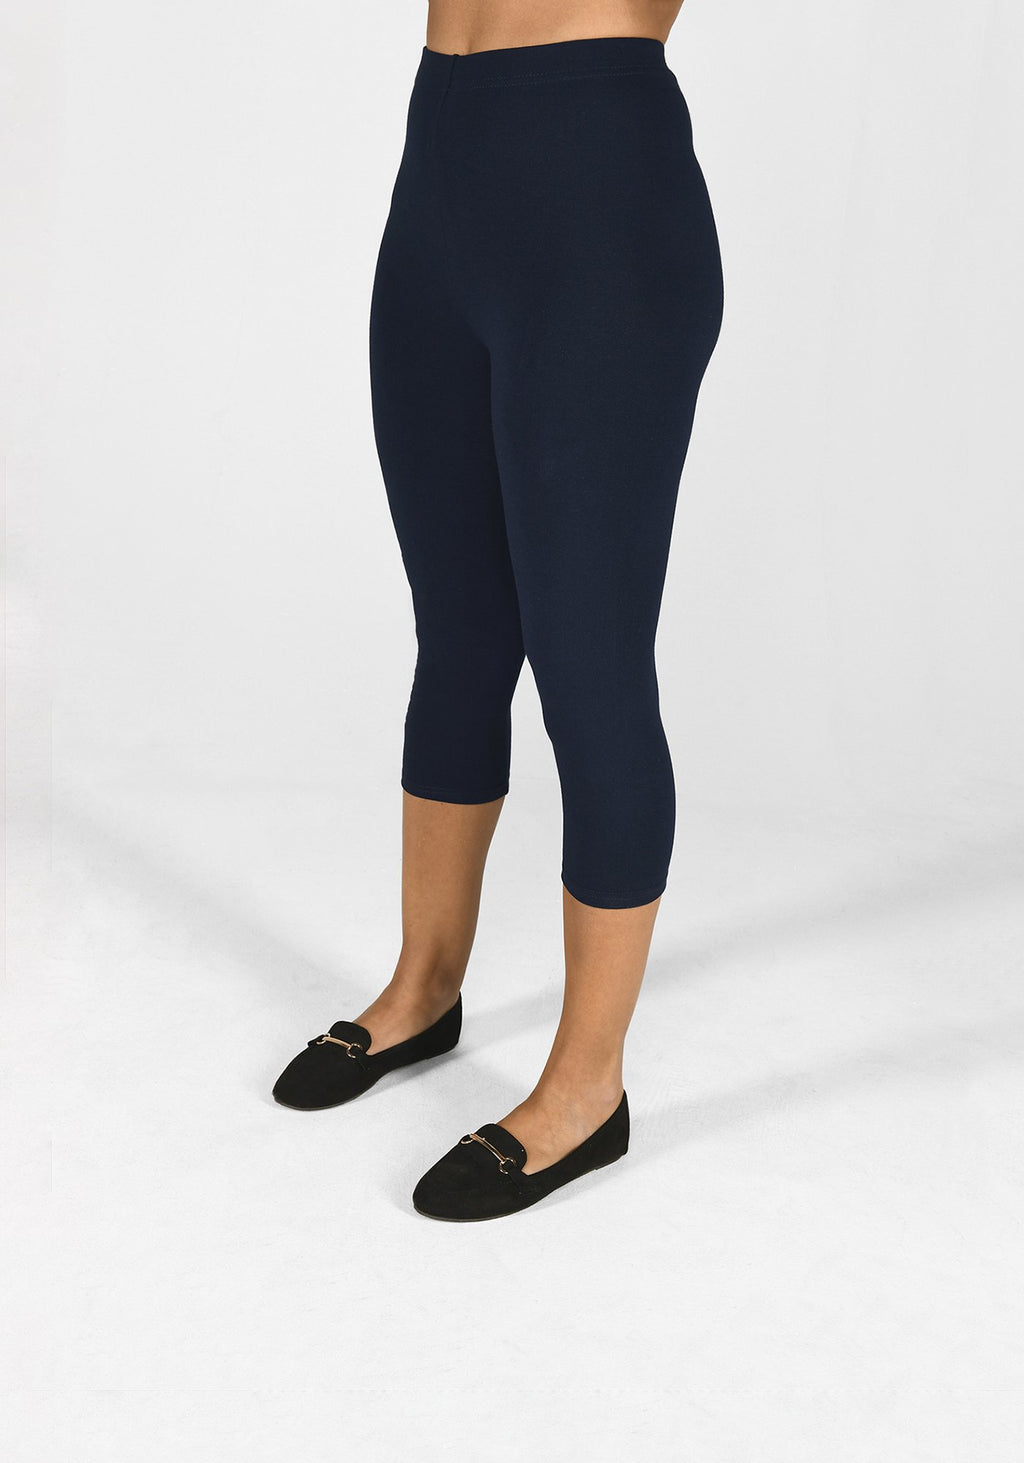 navy blue cropped leggings 1